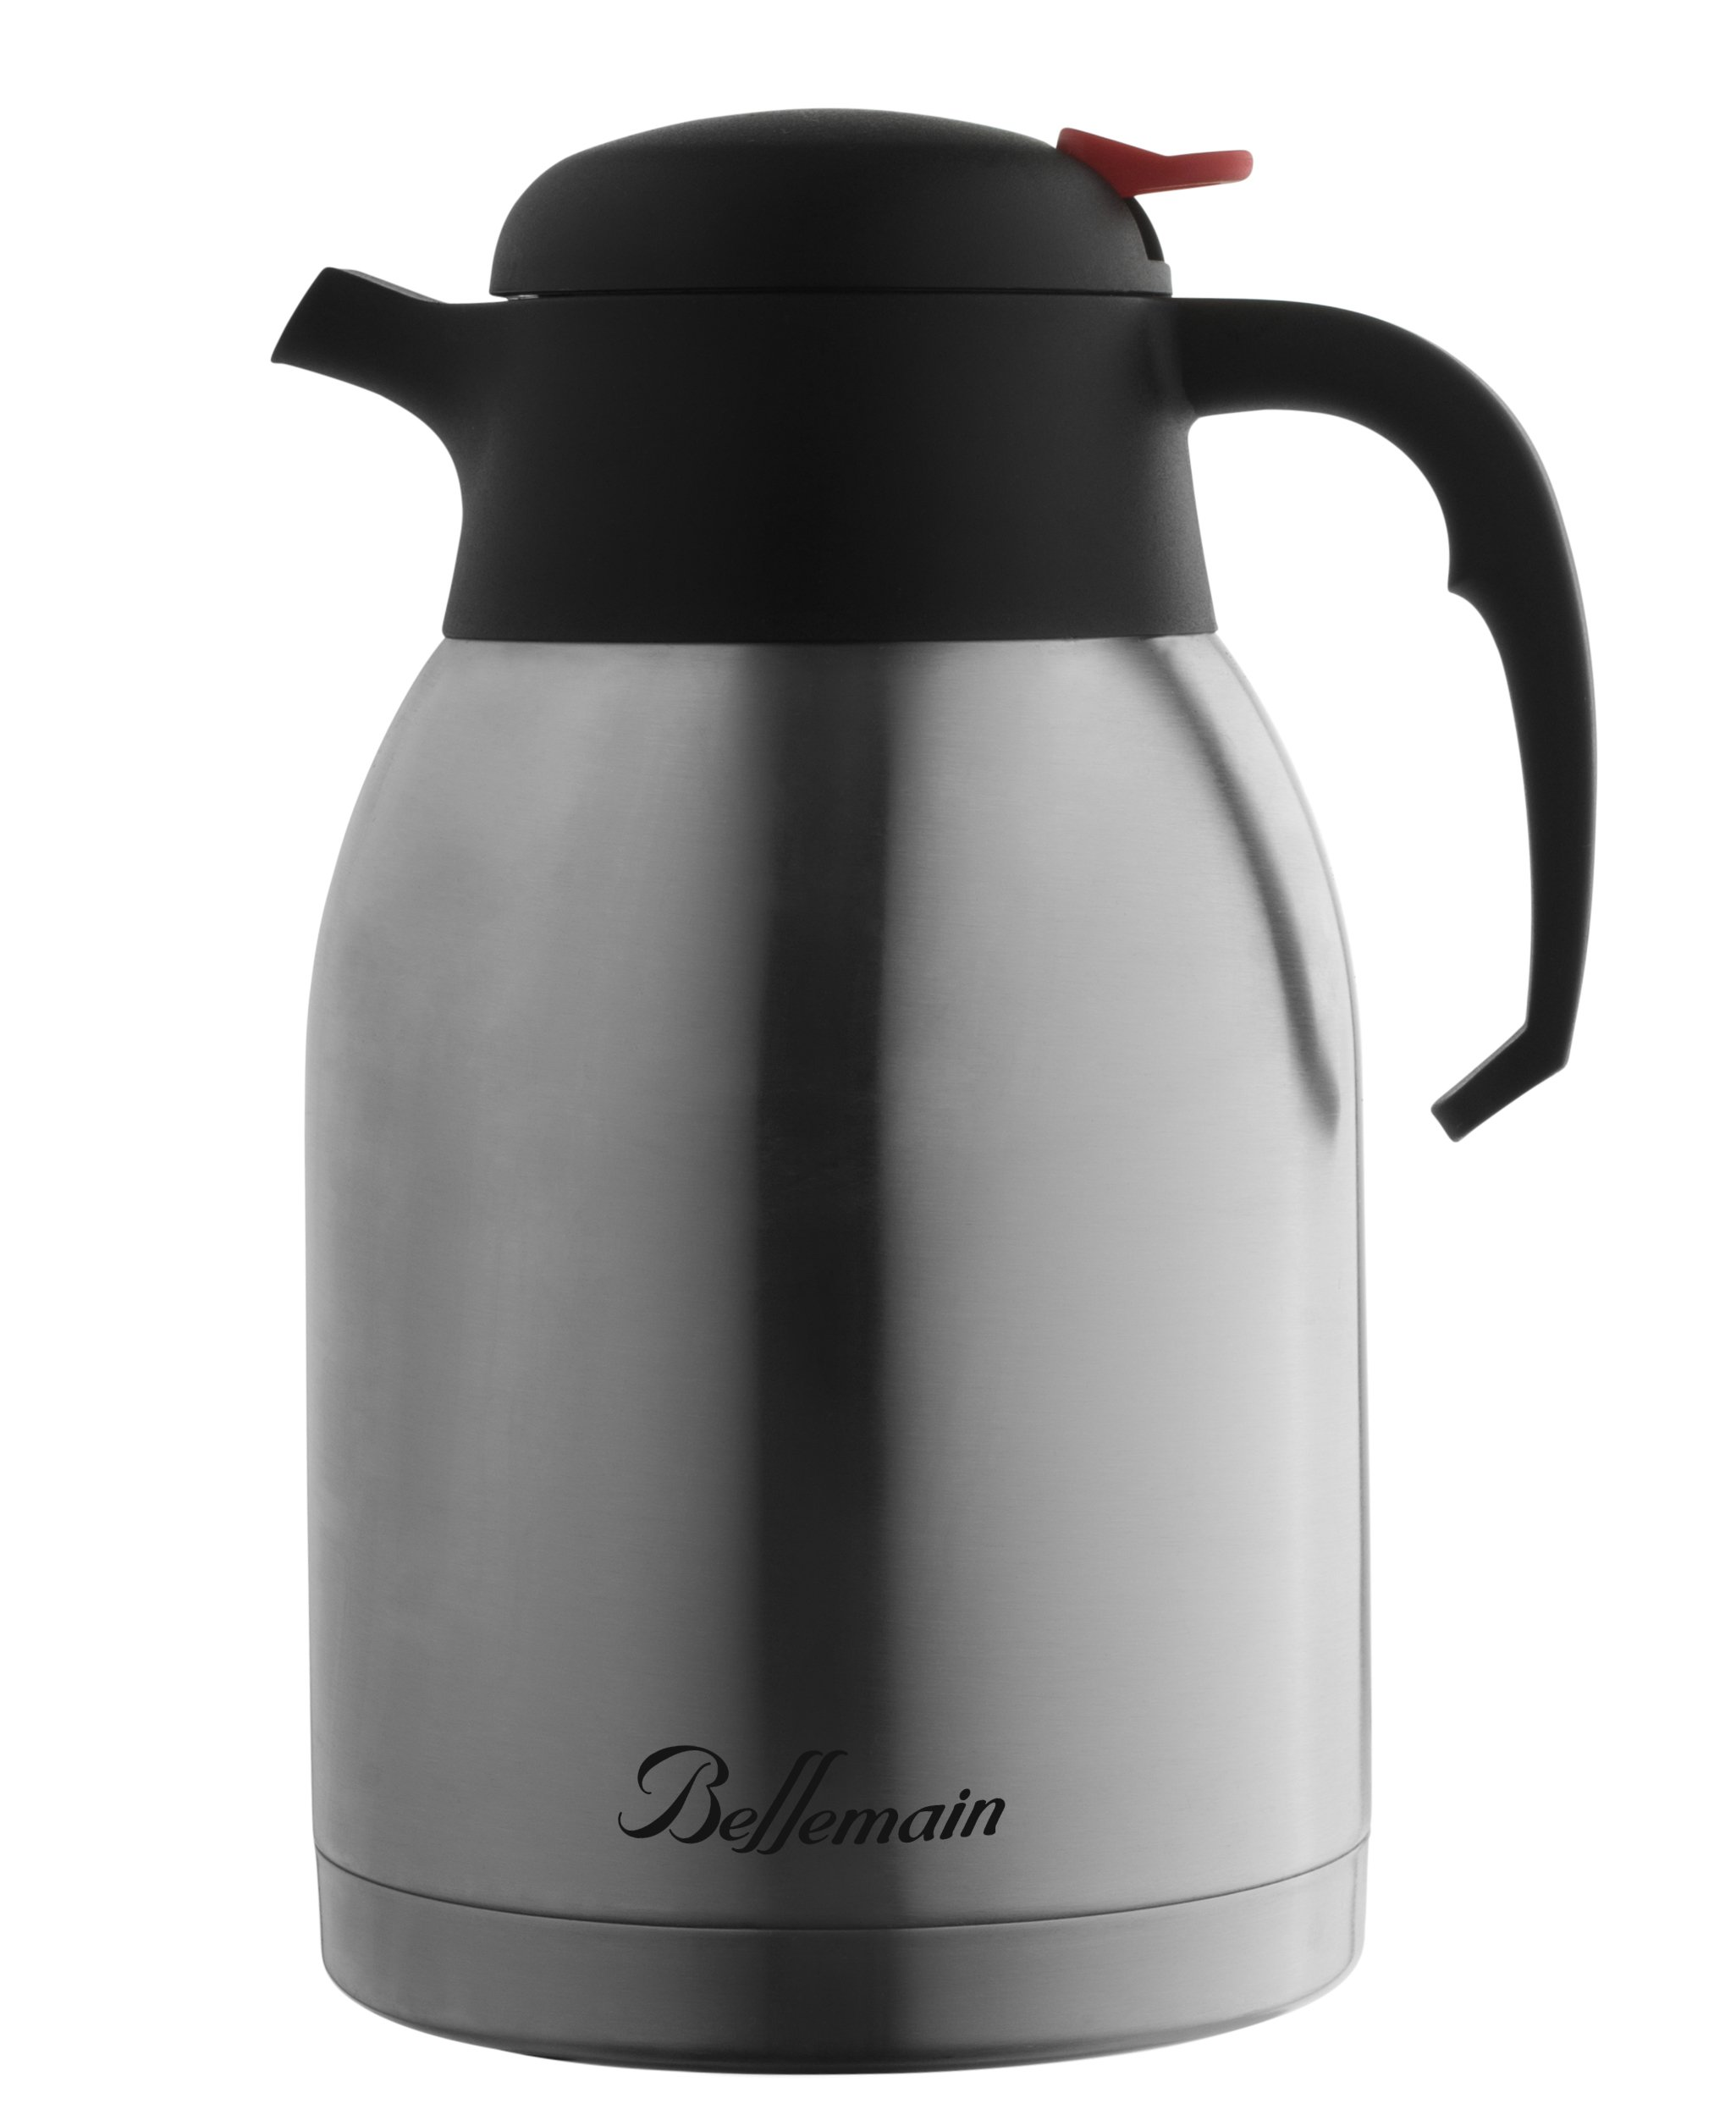 Bellemain Premium Thermal Coffee Carafe Stainless Steel 2 Liter